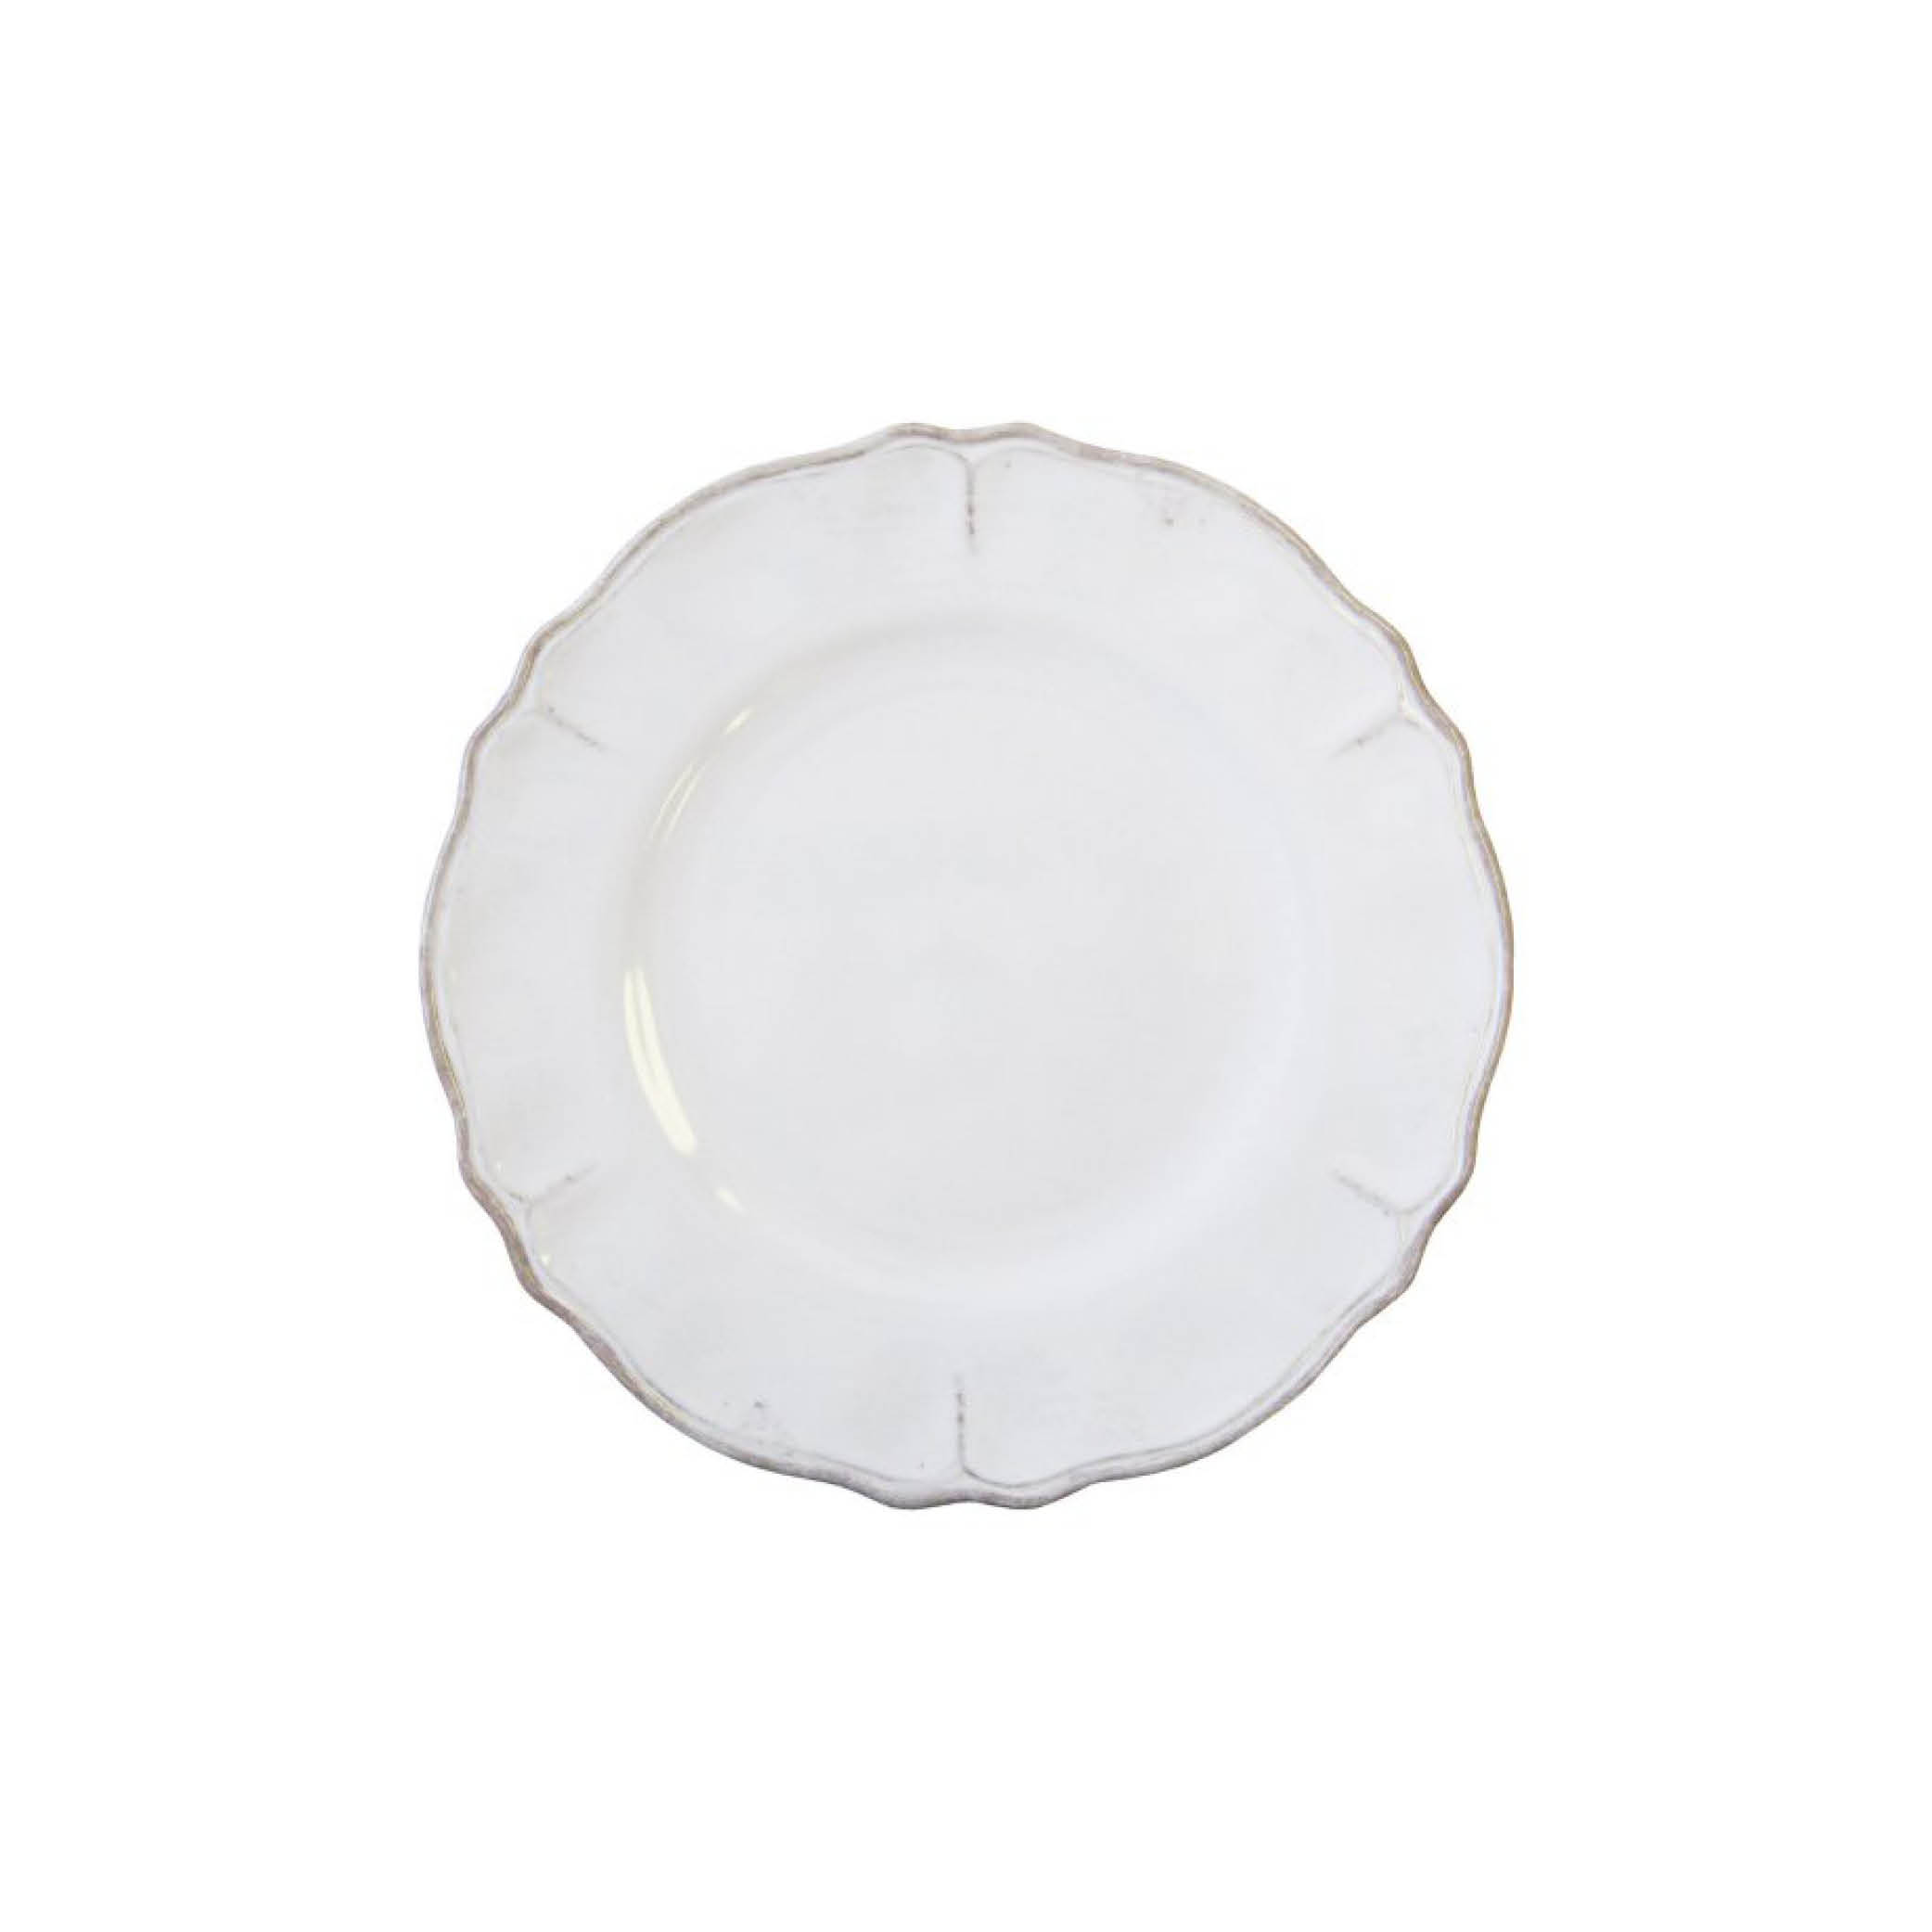 Rustica White Dinner Plate $17.95   Wants 8 Has 4 Needs 4